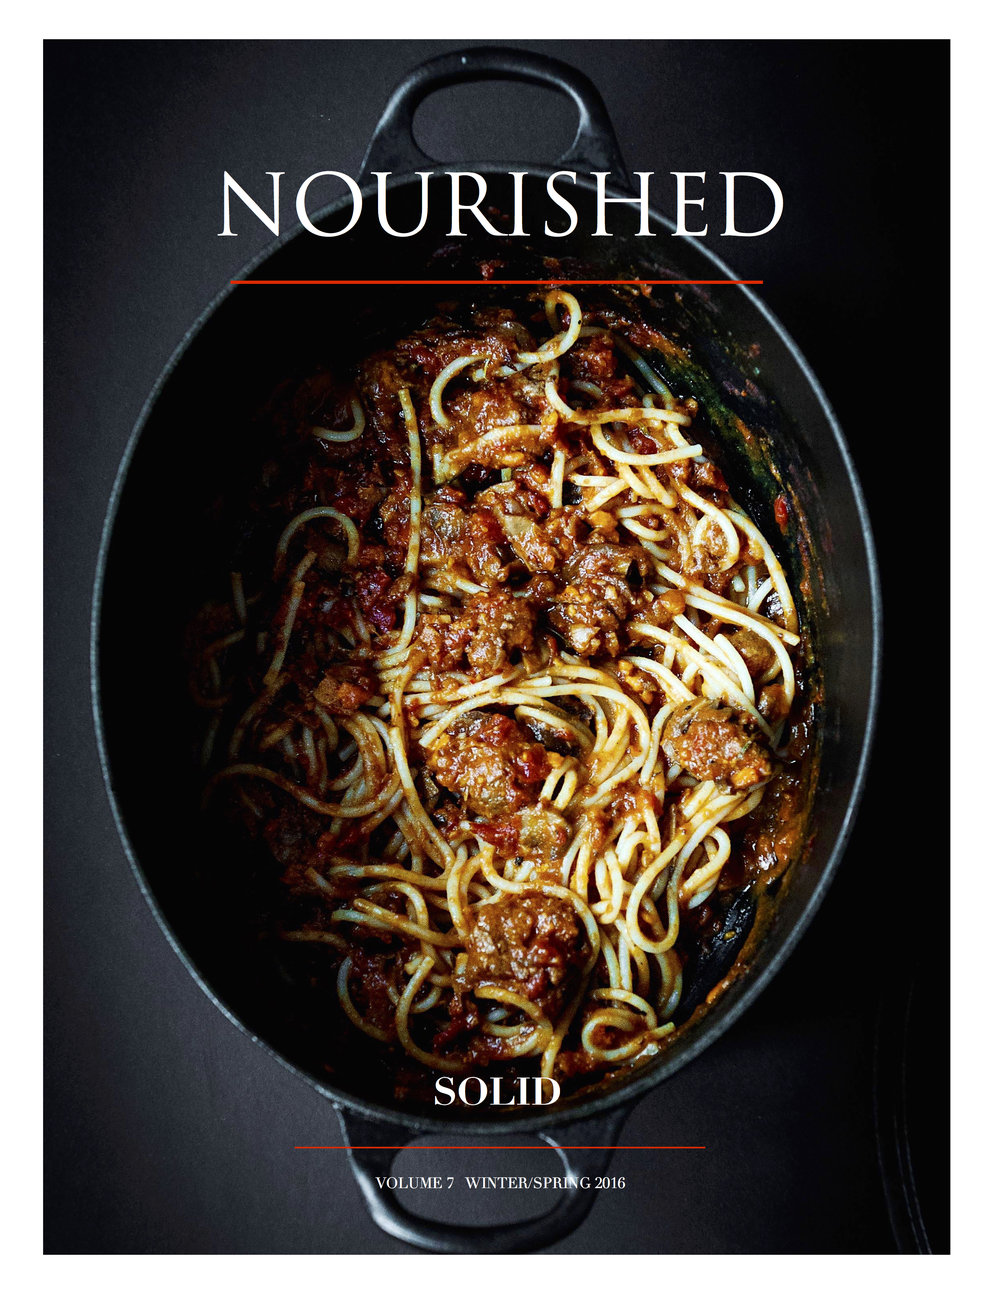 SOLID - NOURISHED vol 7